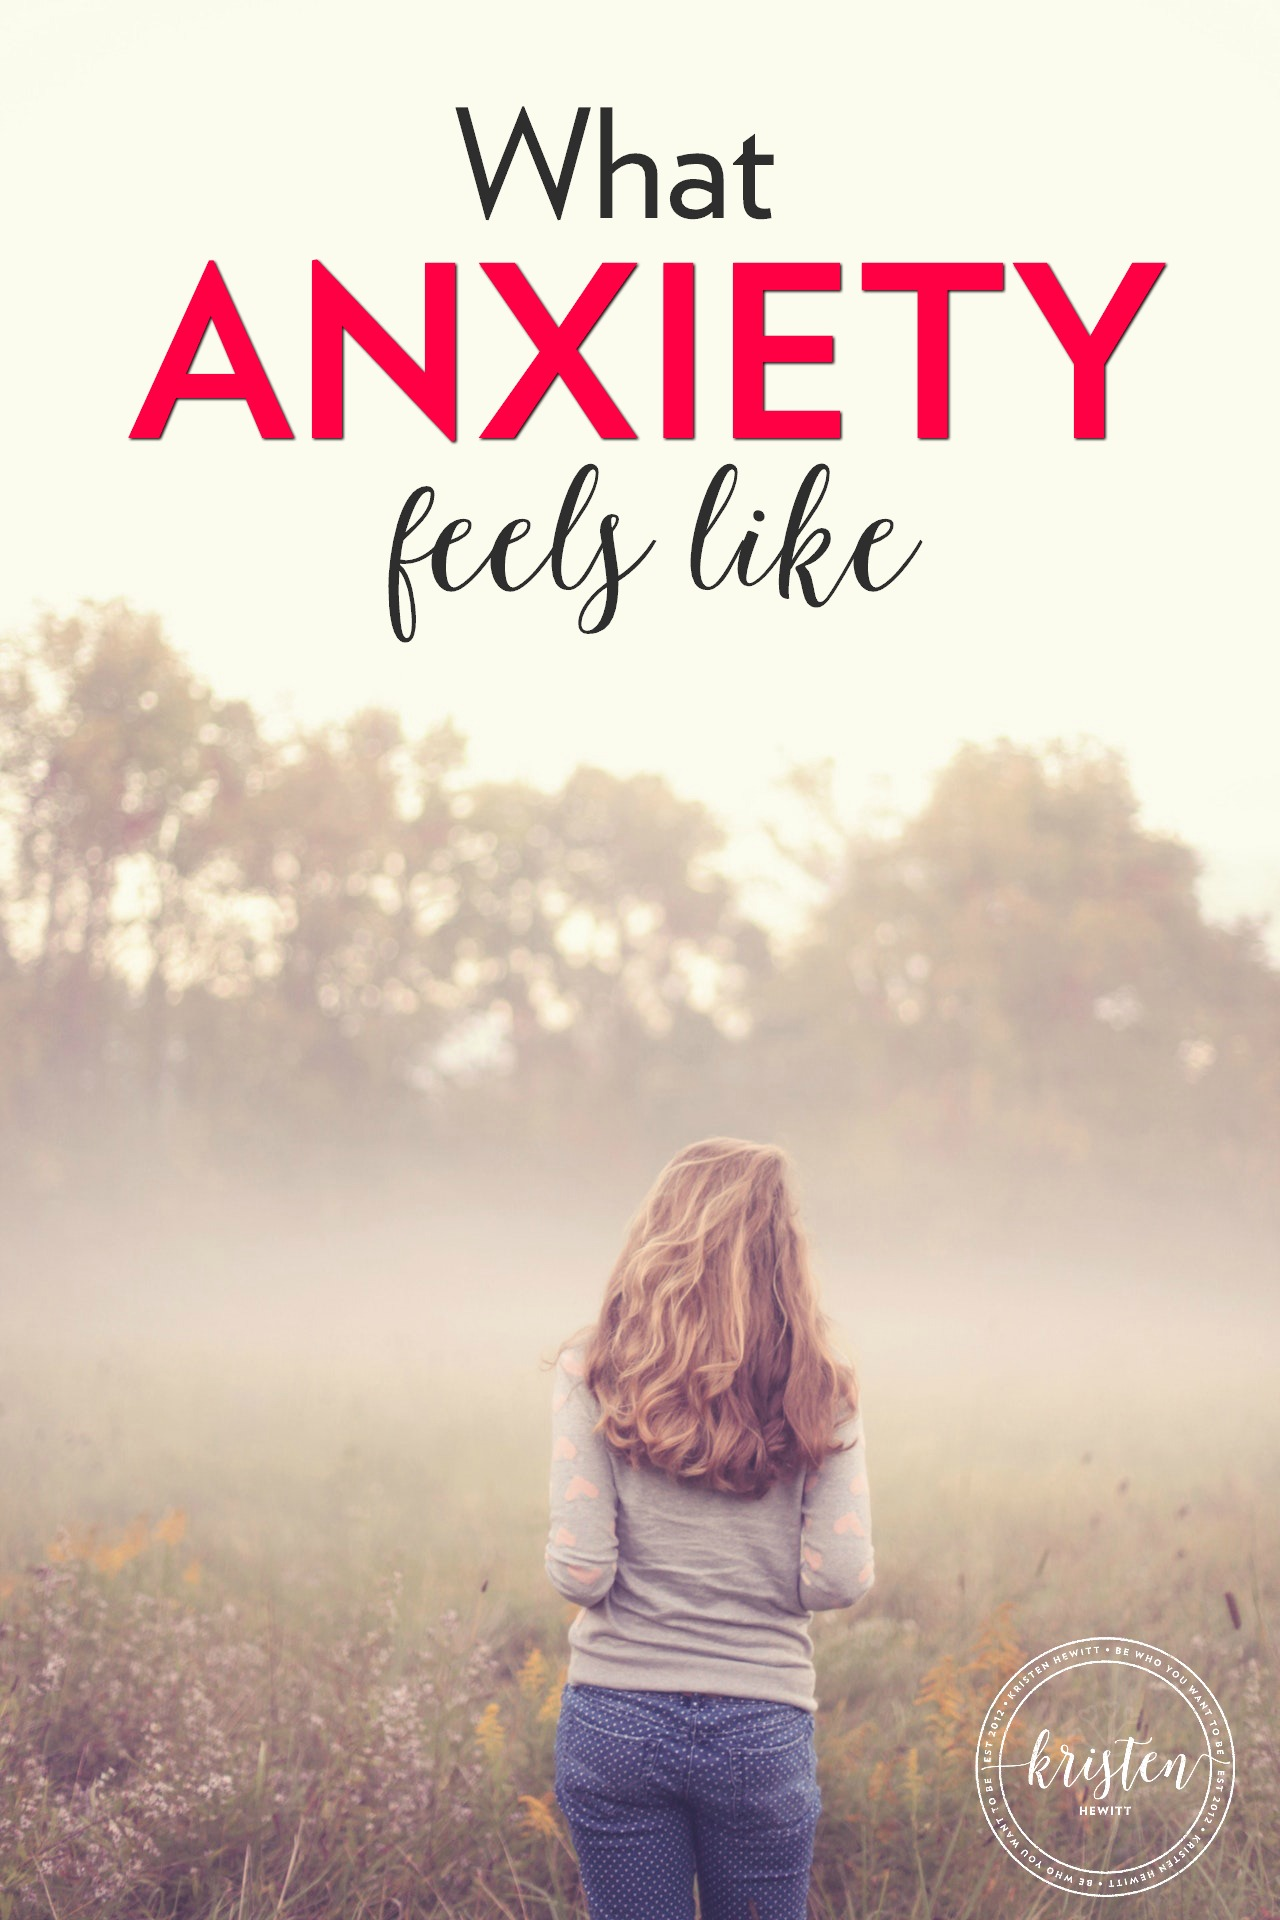 Anxiety comes in waves, it can escape you for awhile then show up when you least expect it. This is what anxiety feels like - you're not alone.